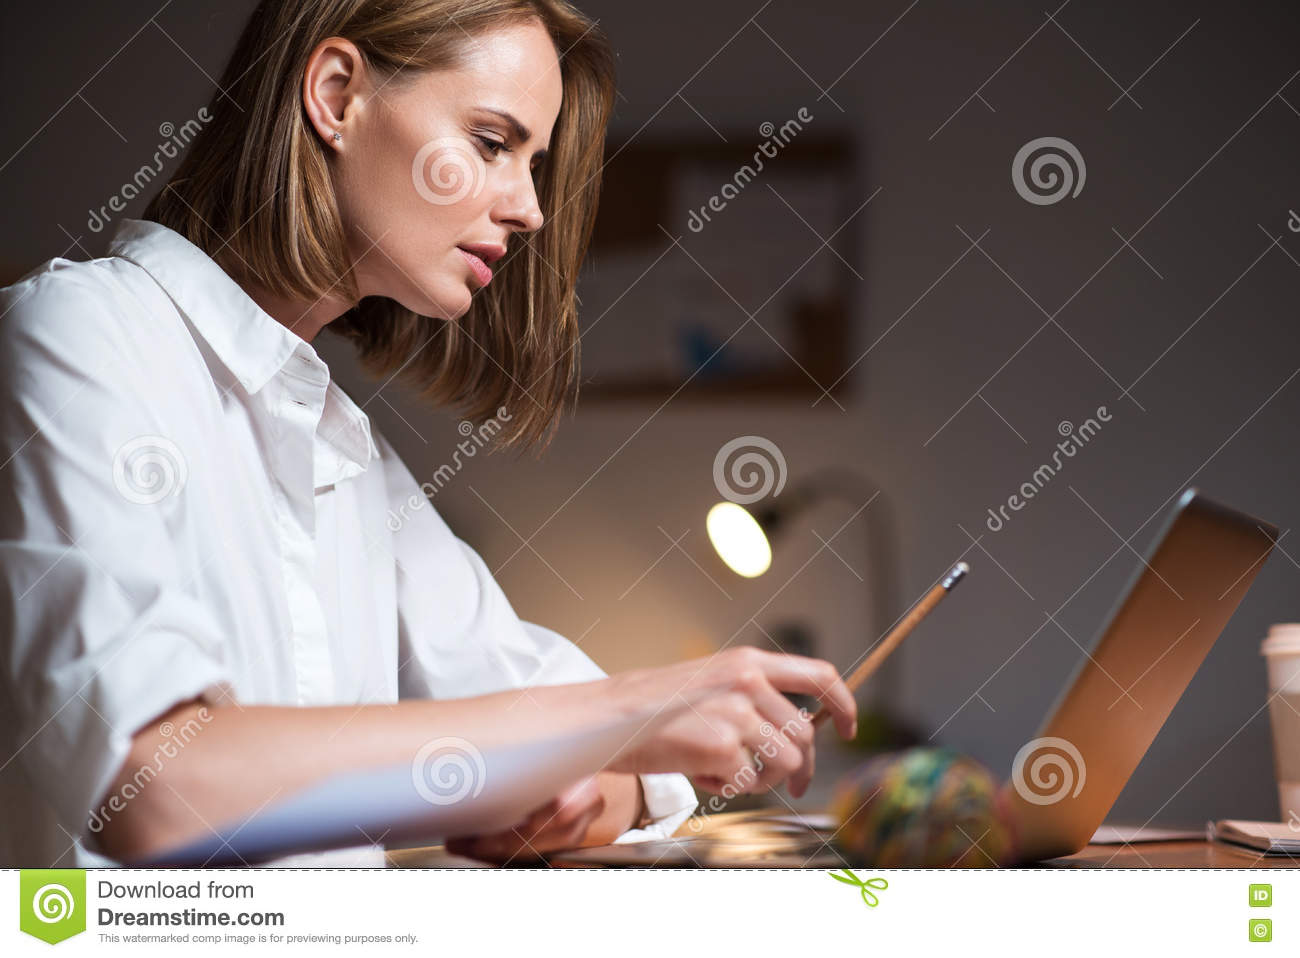 Concentrated woman working on a laptop